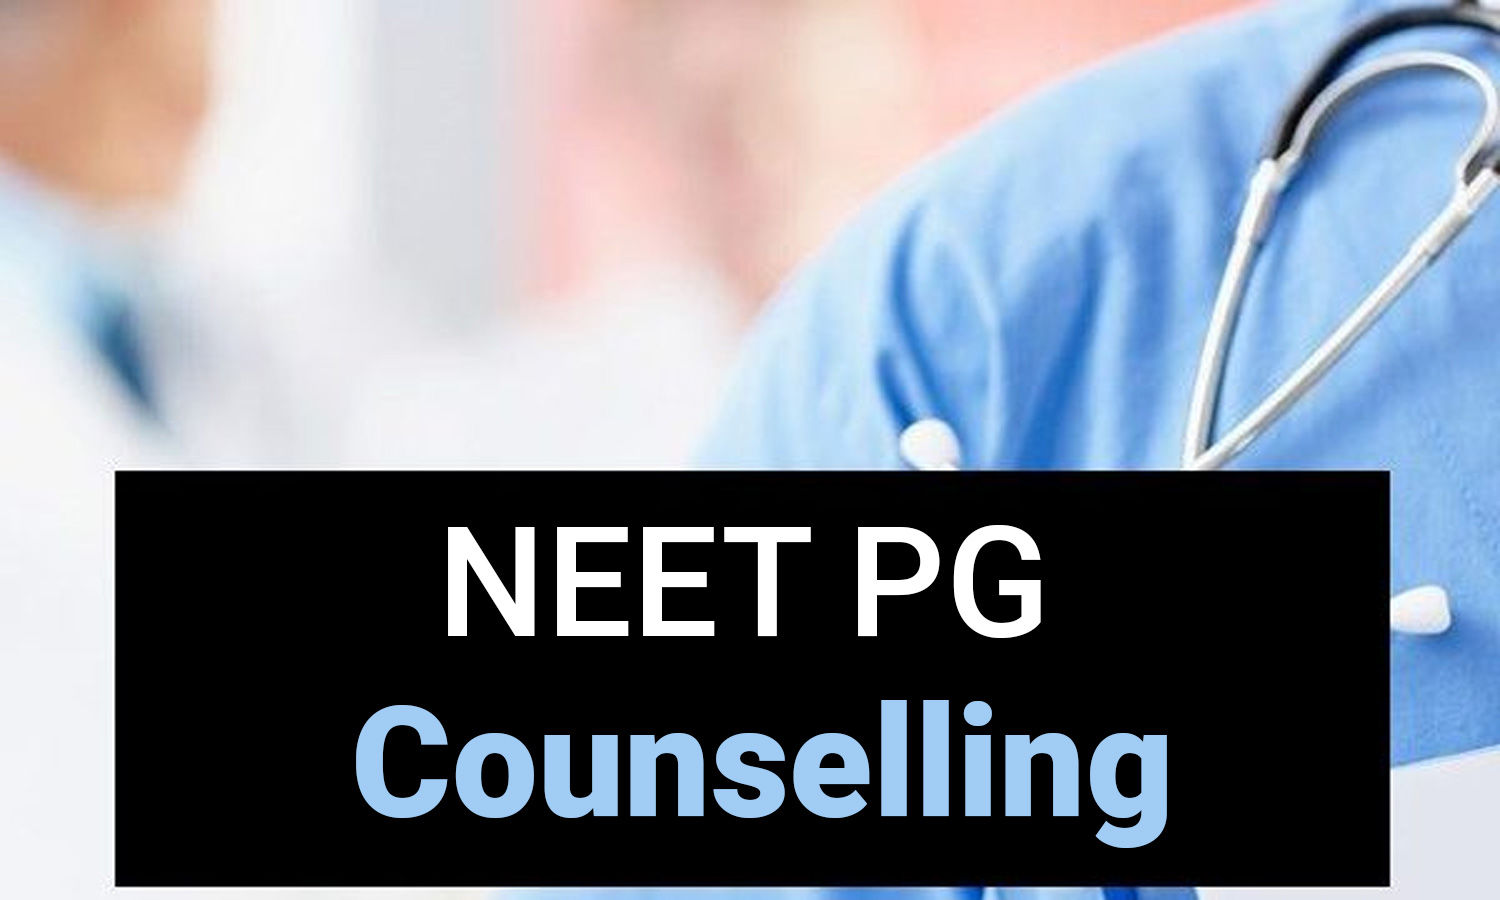 MCC releases Counselling Schedule for NEET PG Counselling